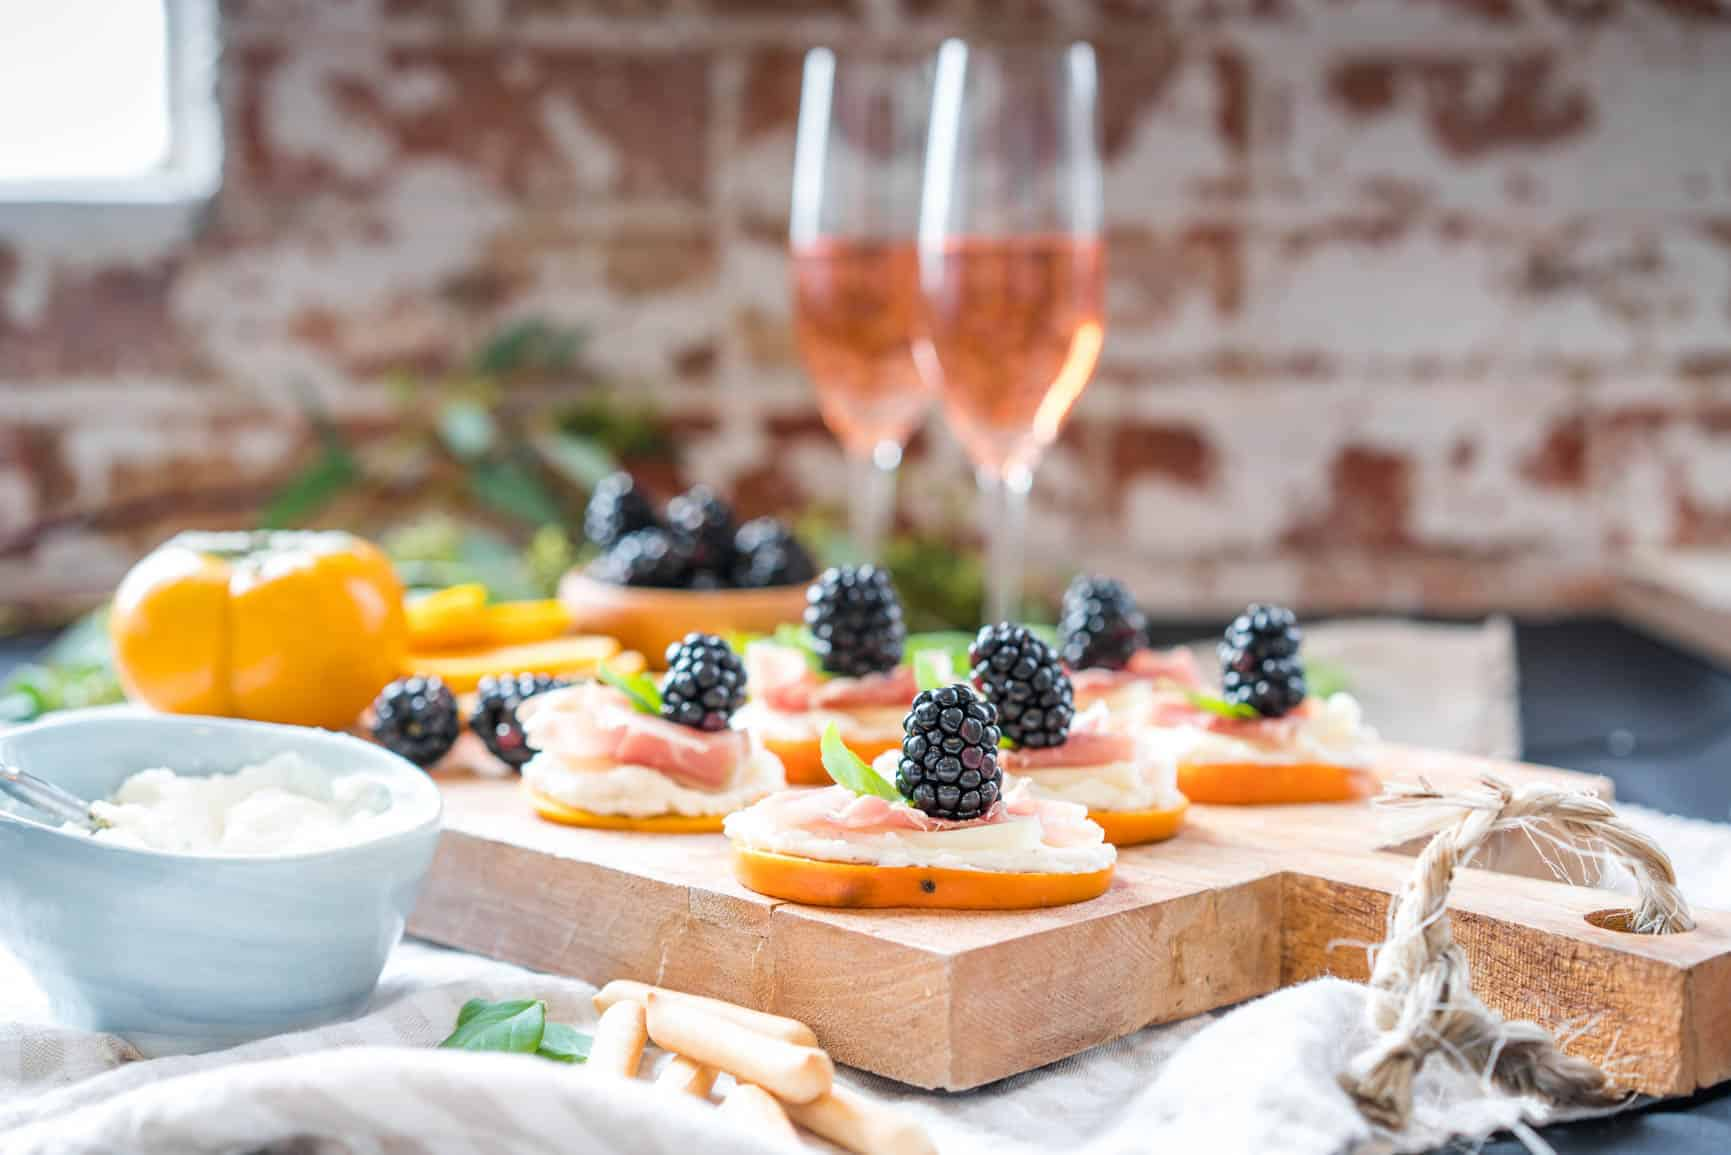 Easy Fuyu Persimmon Prosciutto Appetizers with Ricotta and Blackberries